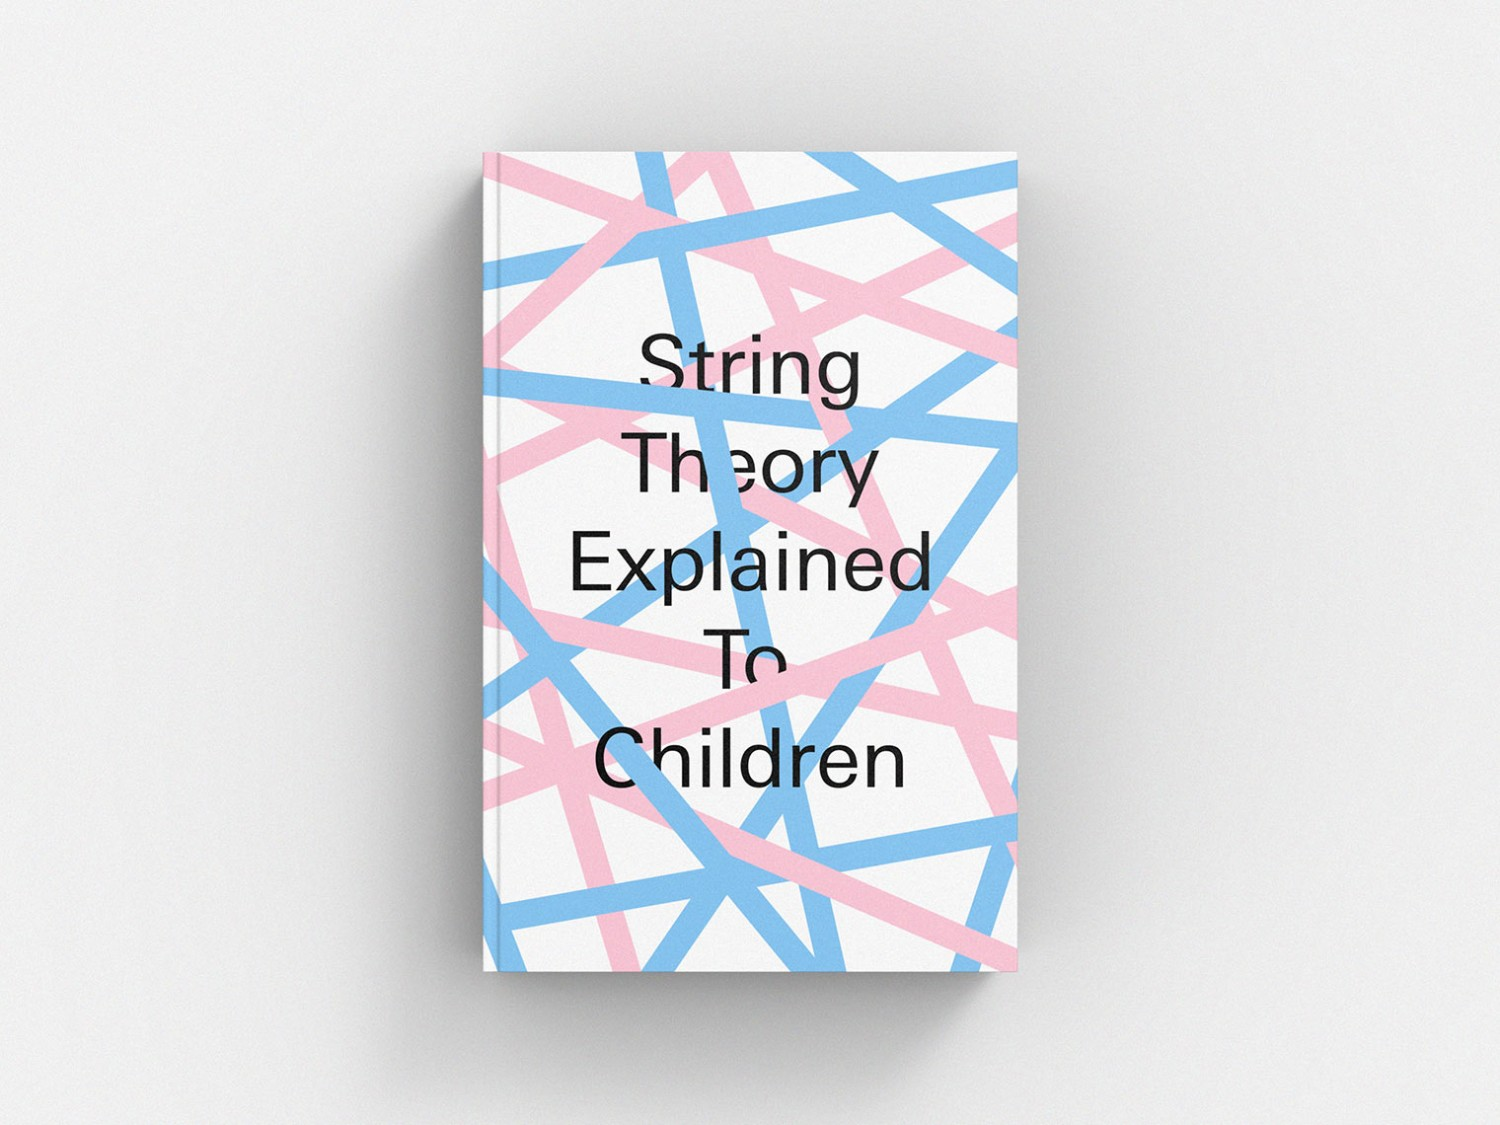 String Theory Explained to Children